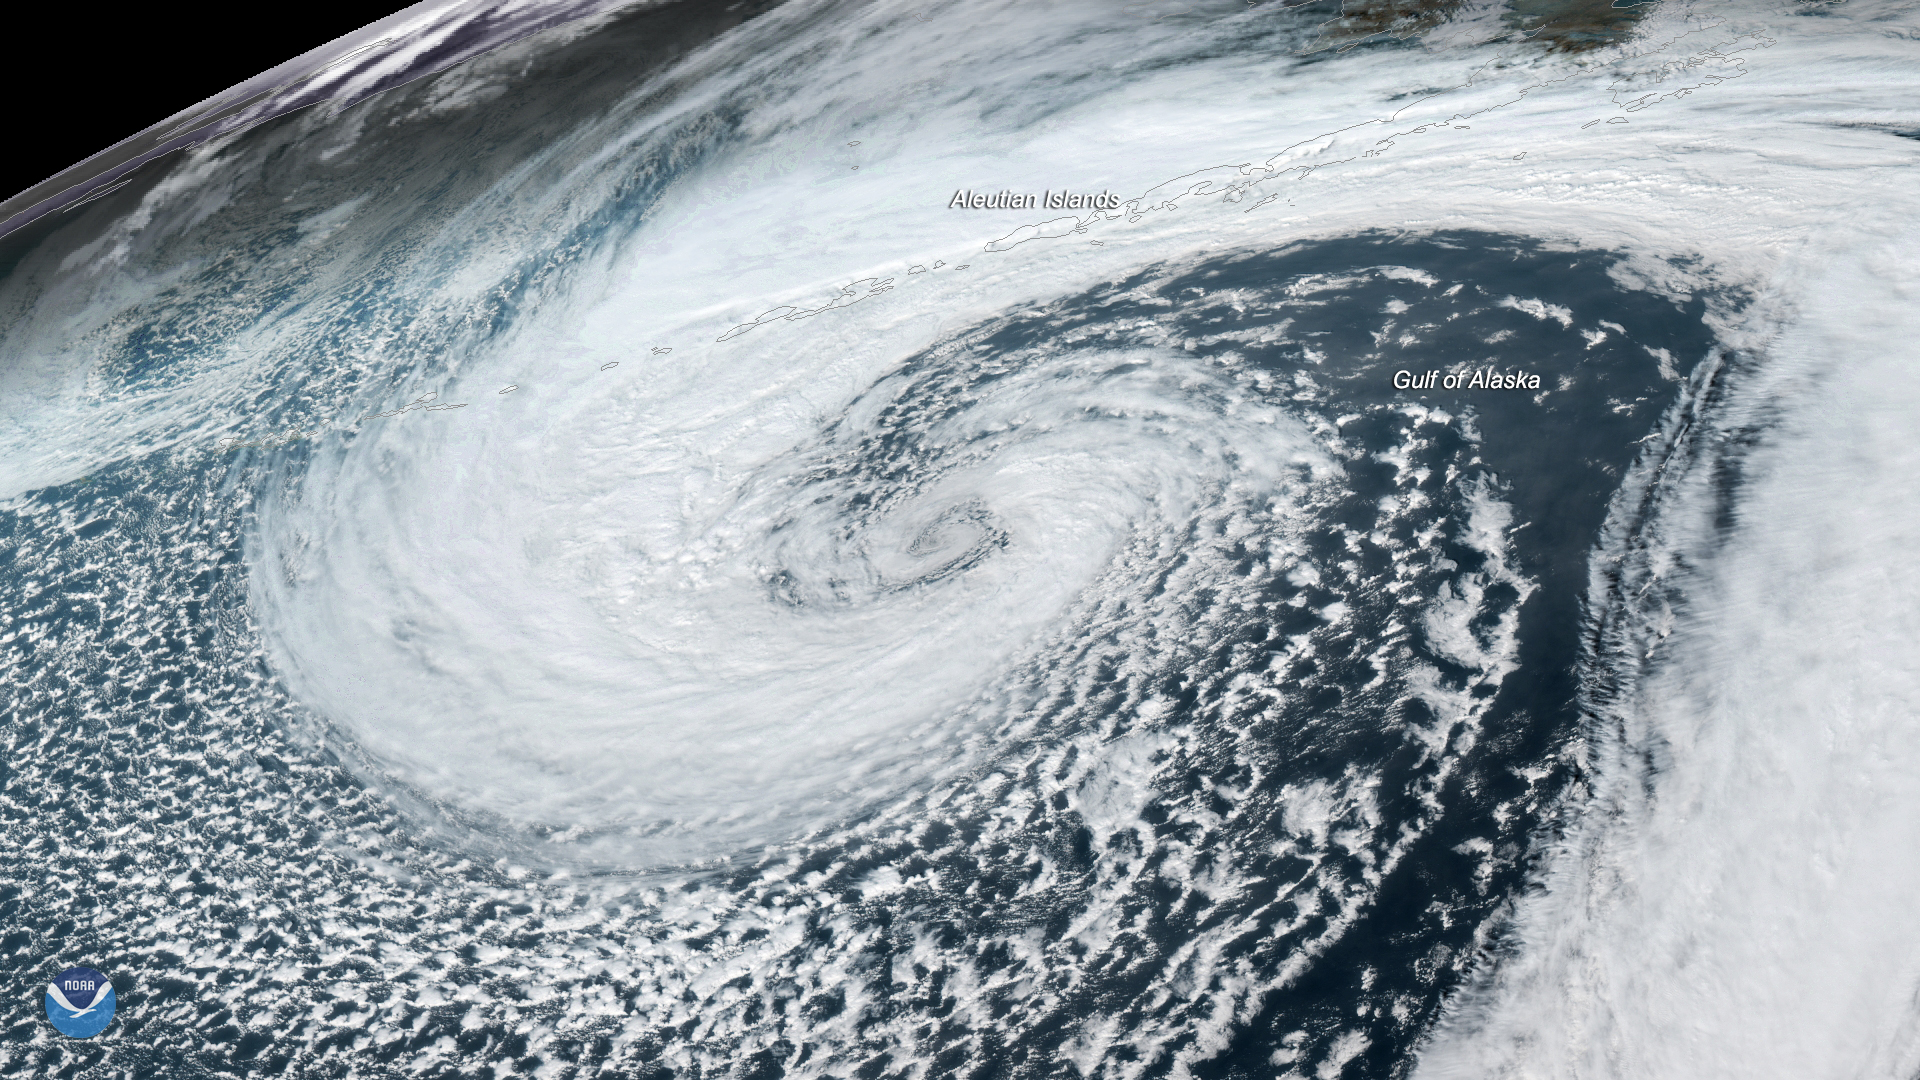 GOES West Watches Mid-Latitude Cyclone in Gulf of Alaska